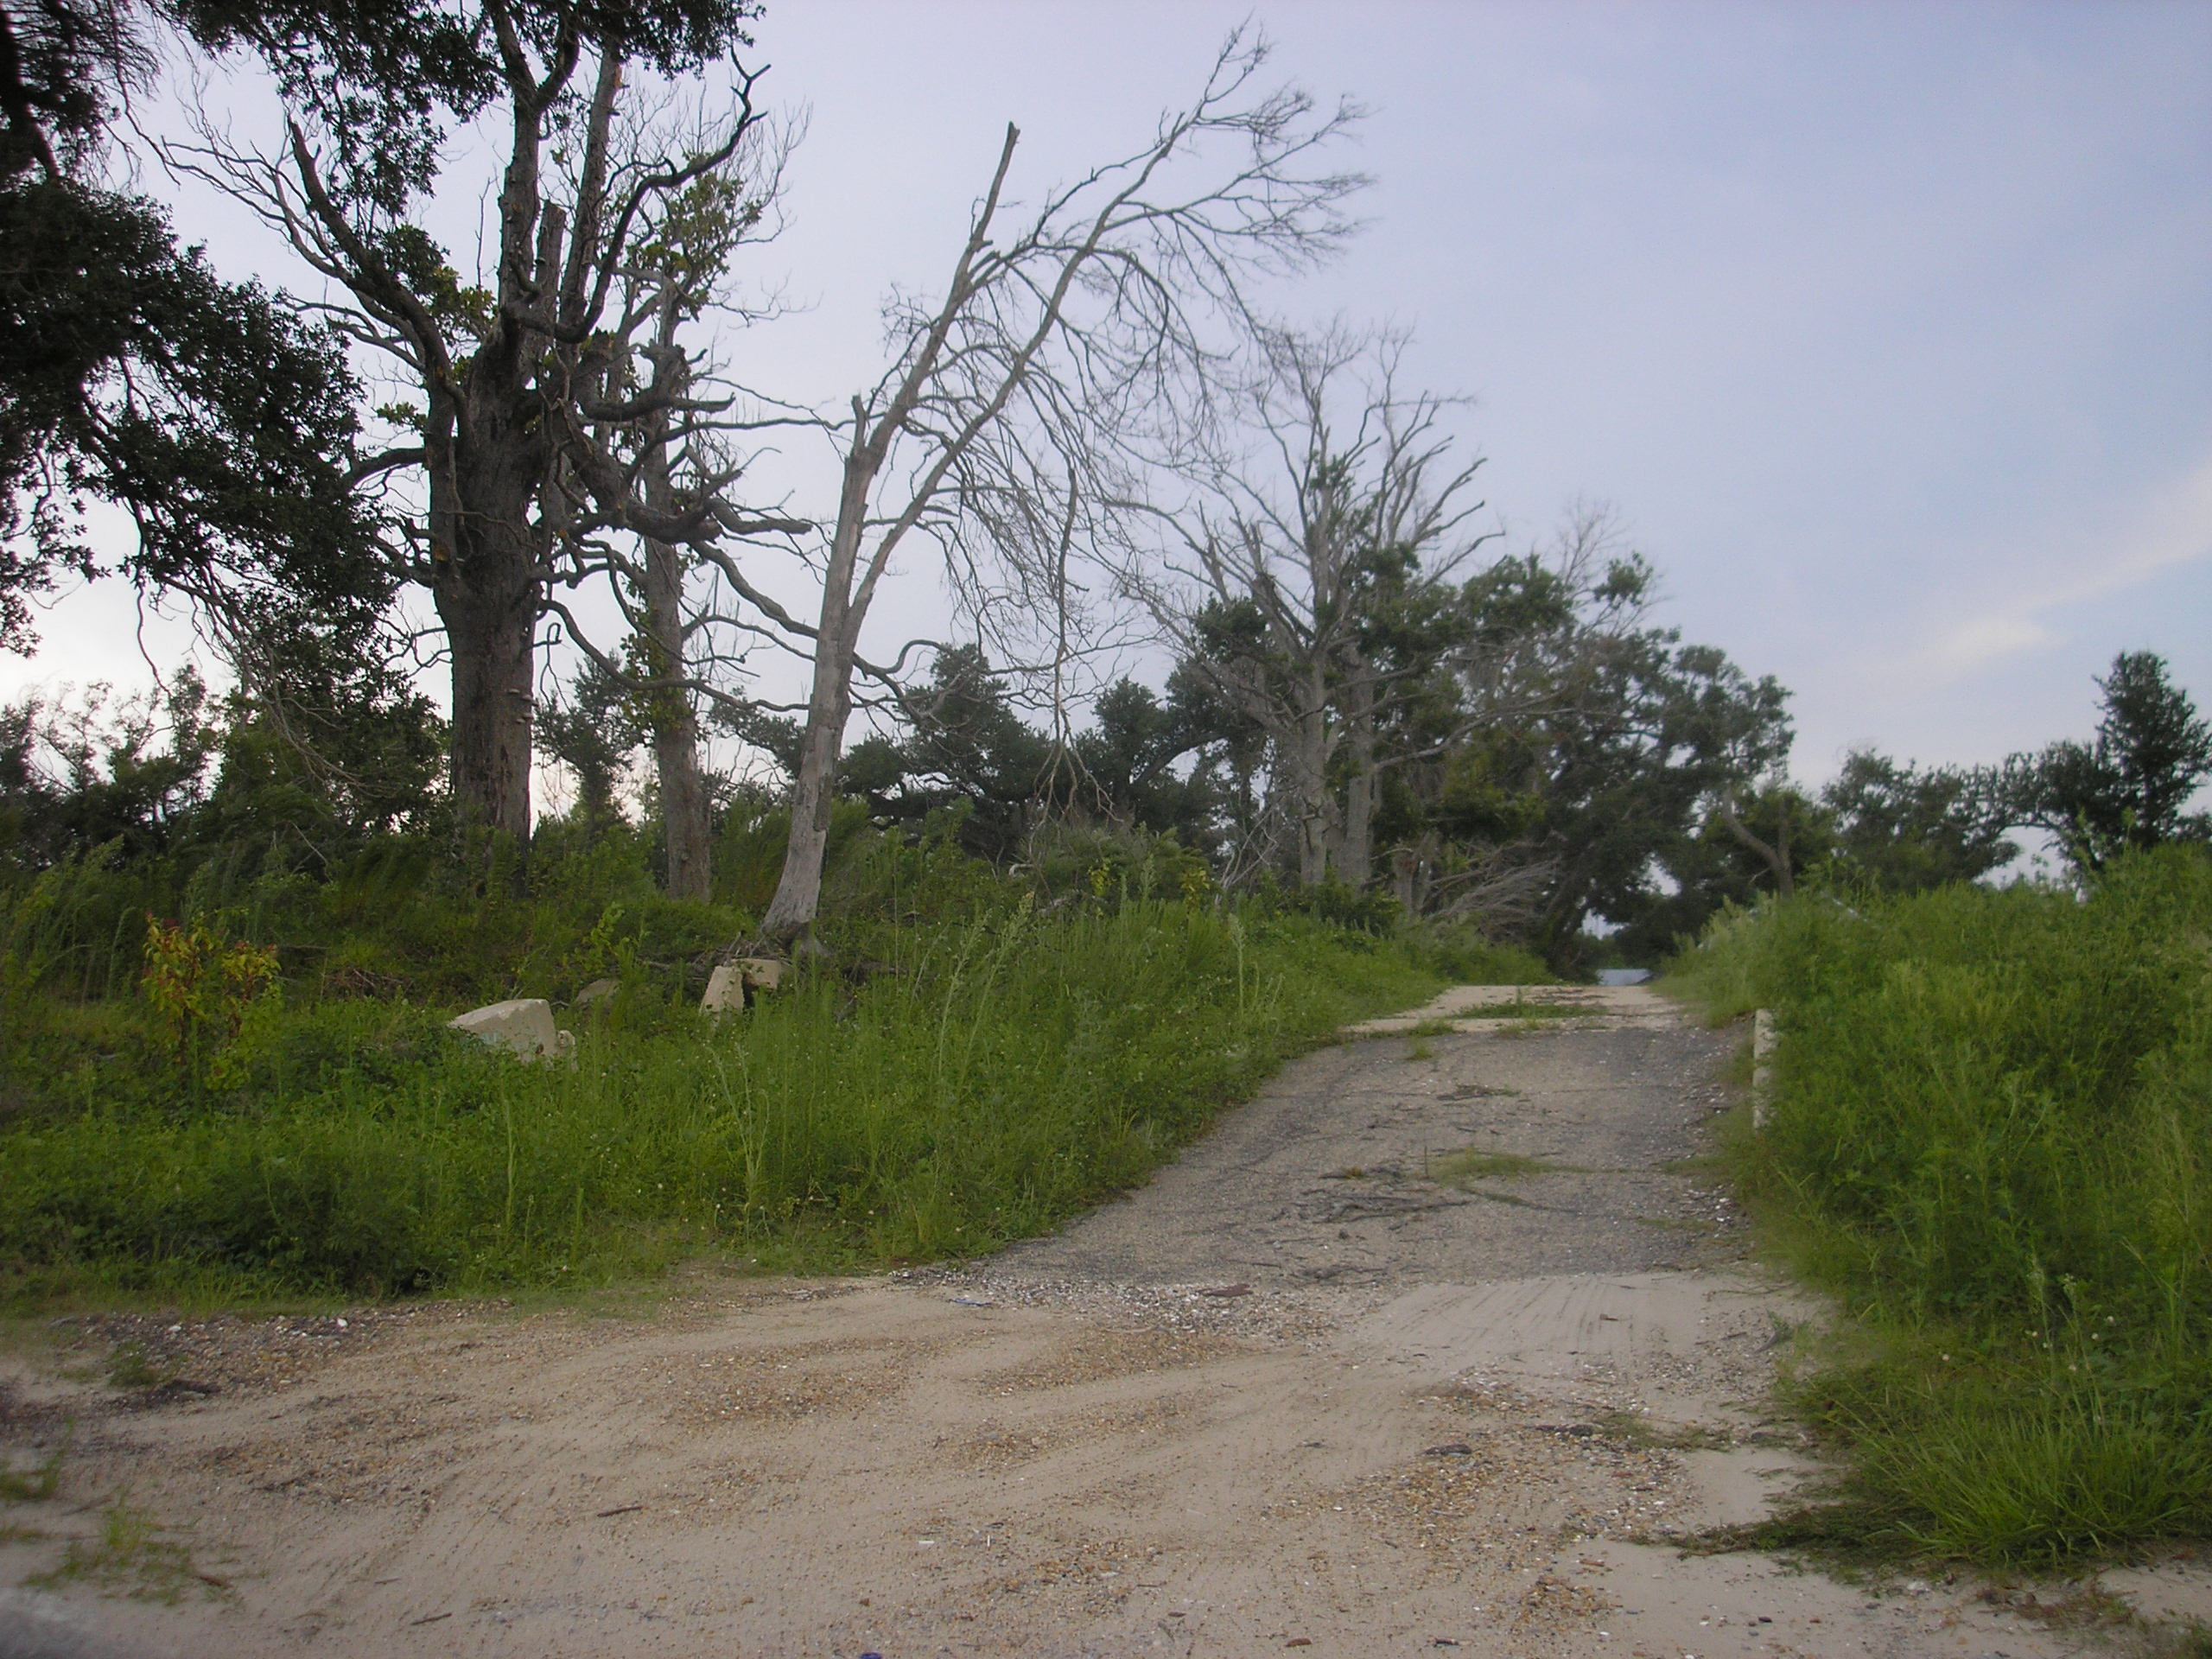 Vacant lots are everywhere, not just along the beach, and the feeling you get from driveway after driveway with no home attached is hard to explain.